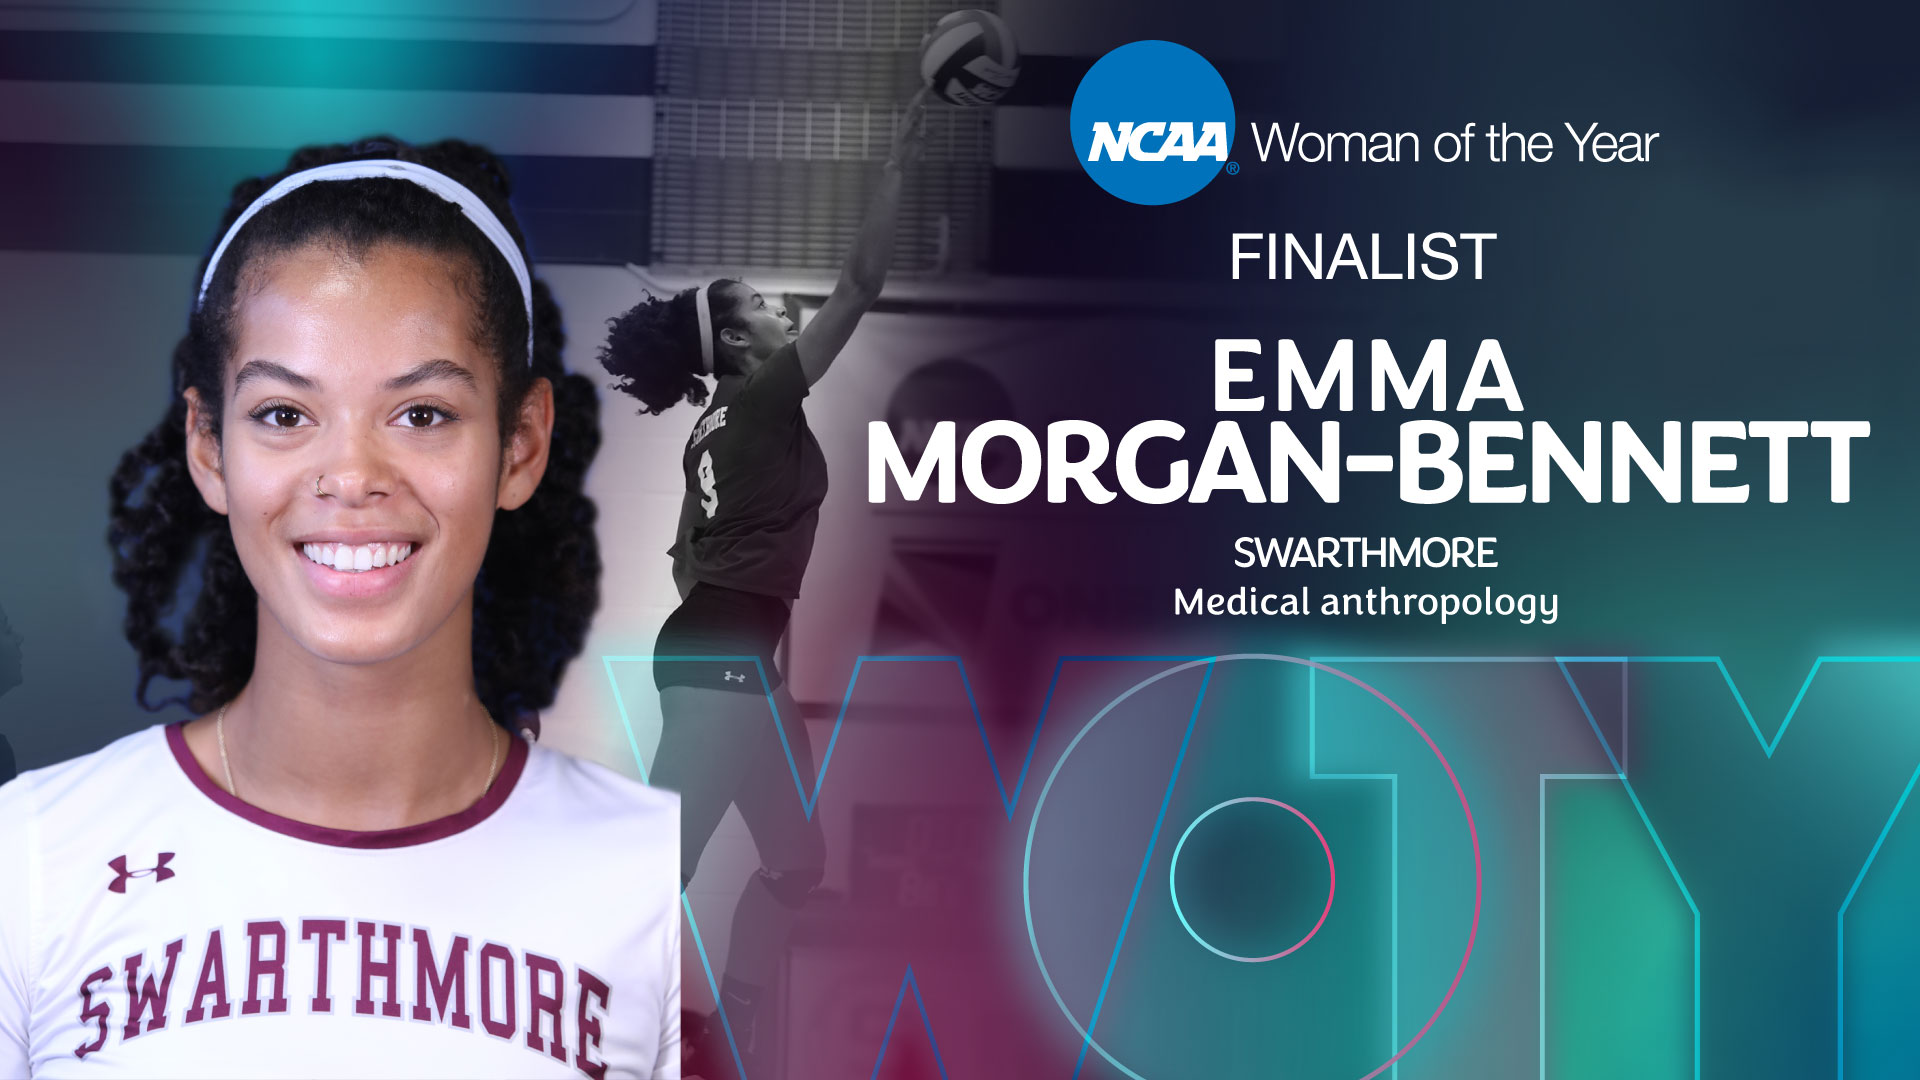 Emma Morgan-Bennett Named NCAA Woman of the Year Top 9 Finalist